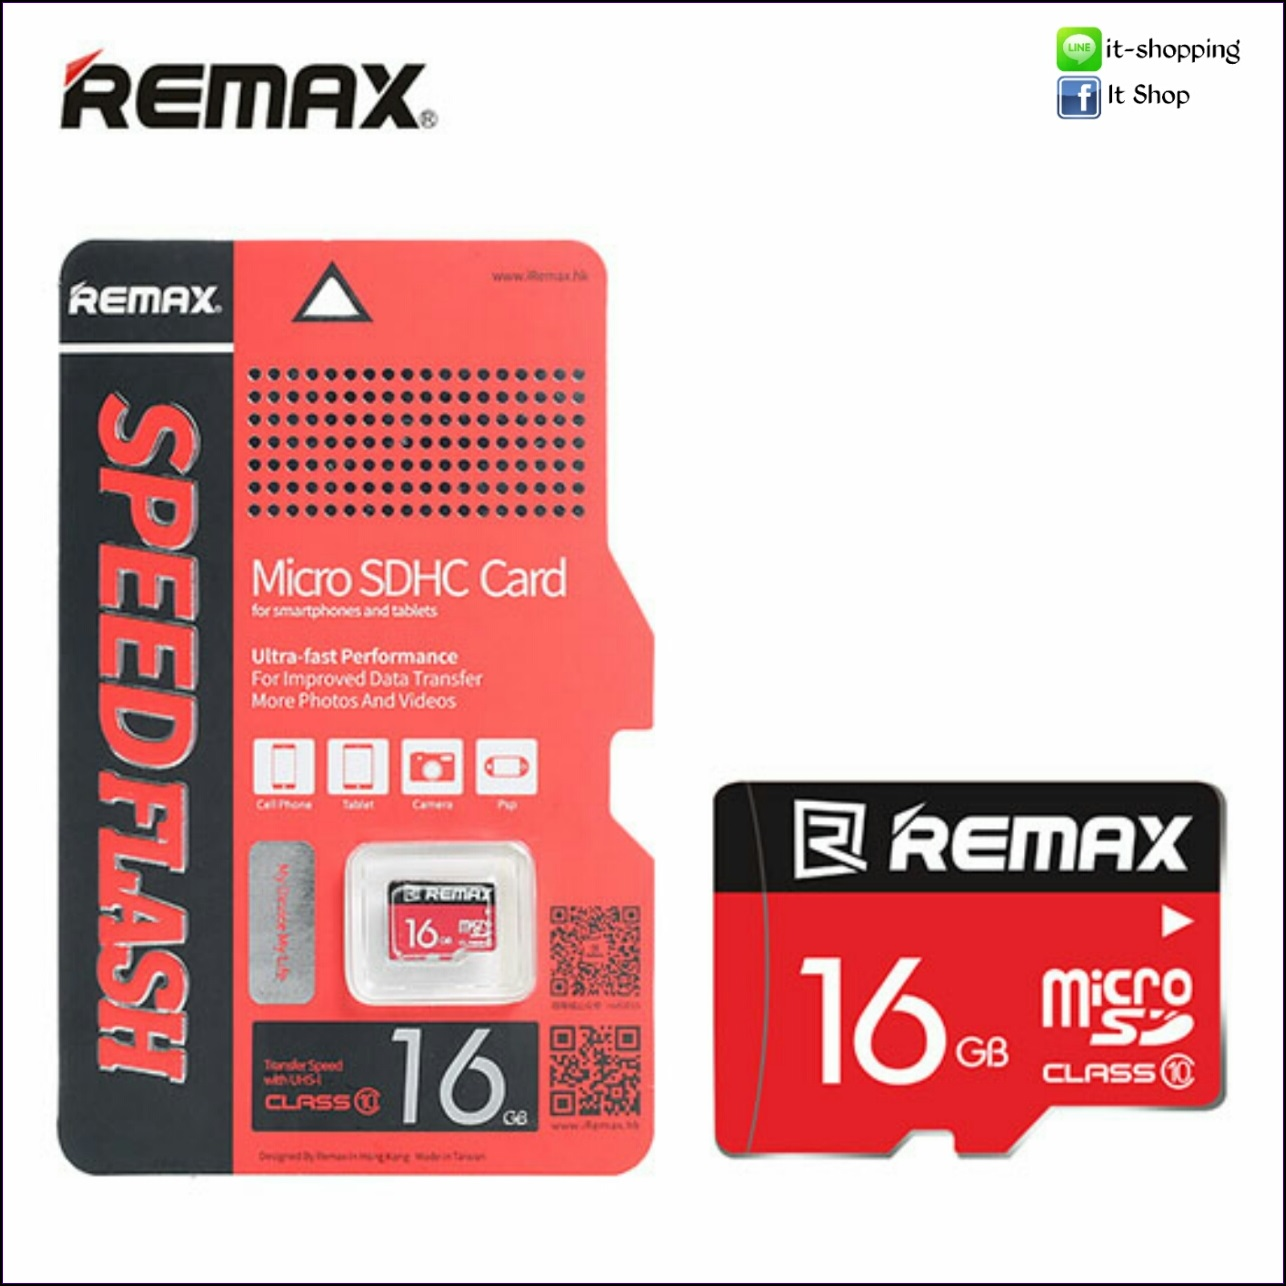 Micro SD Card Remax 16 GB